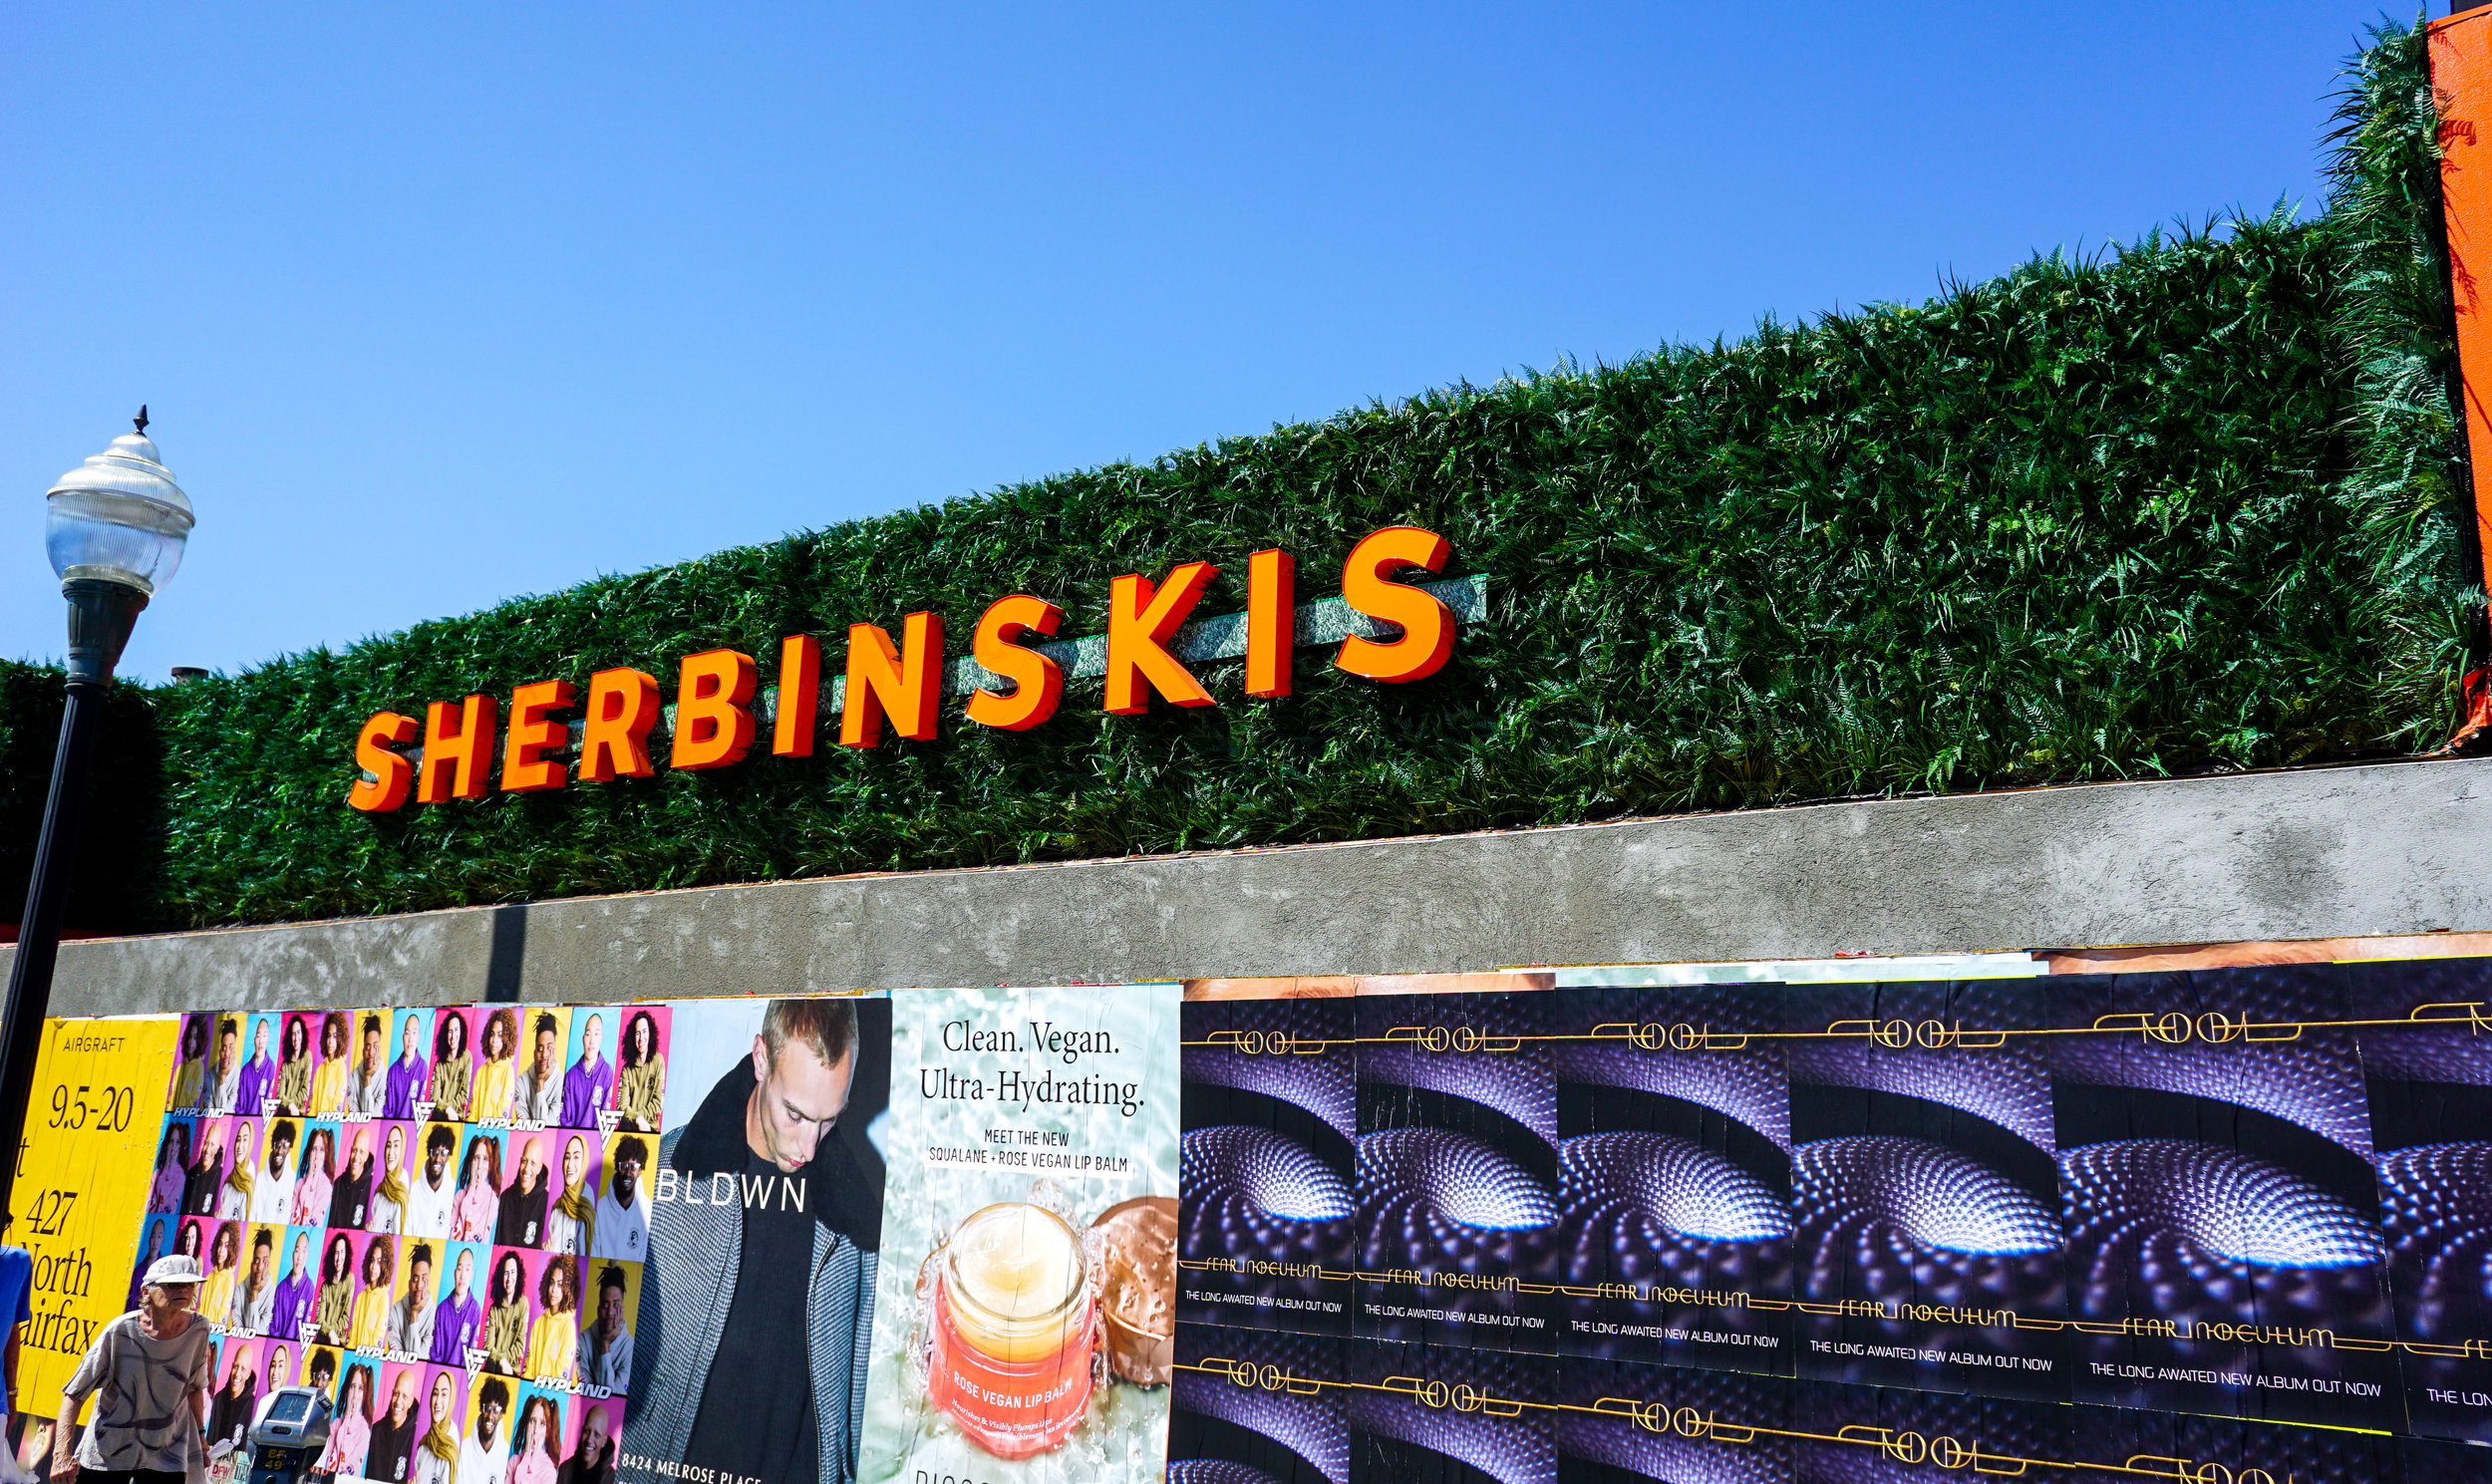 ALW Installation at Sherbinskis in LA  This client wanted plants to surround the signage on the exterior of their new space in LA, but did not want the upkeep of live plants. We created a custom design with our artificial living wall panels to suit their needs.